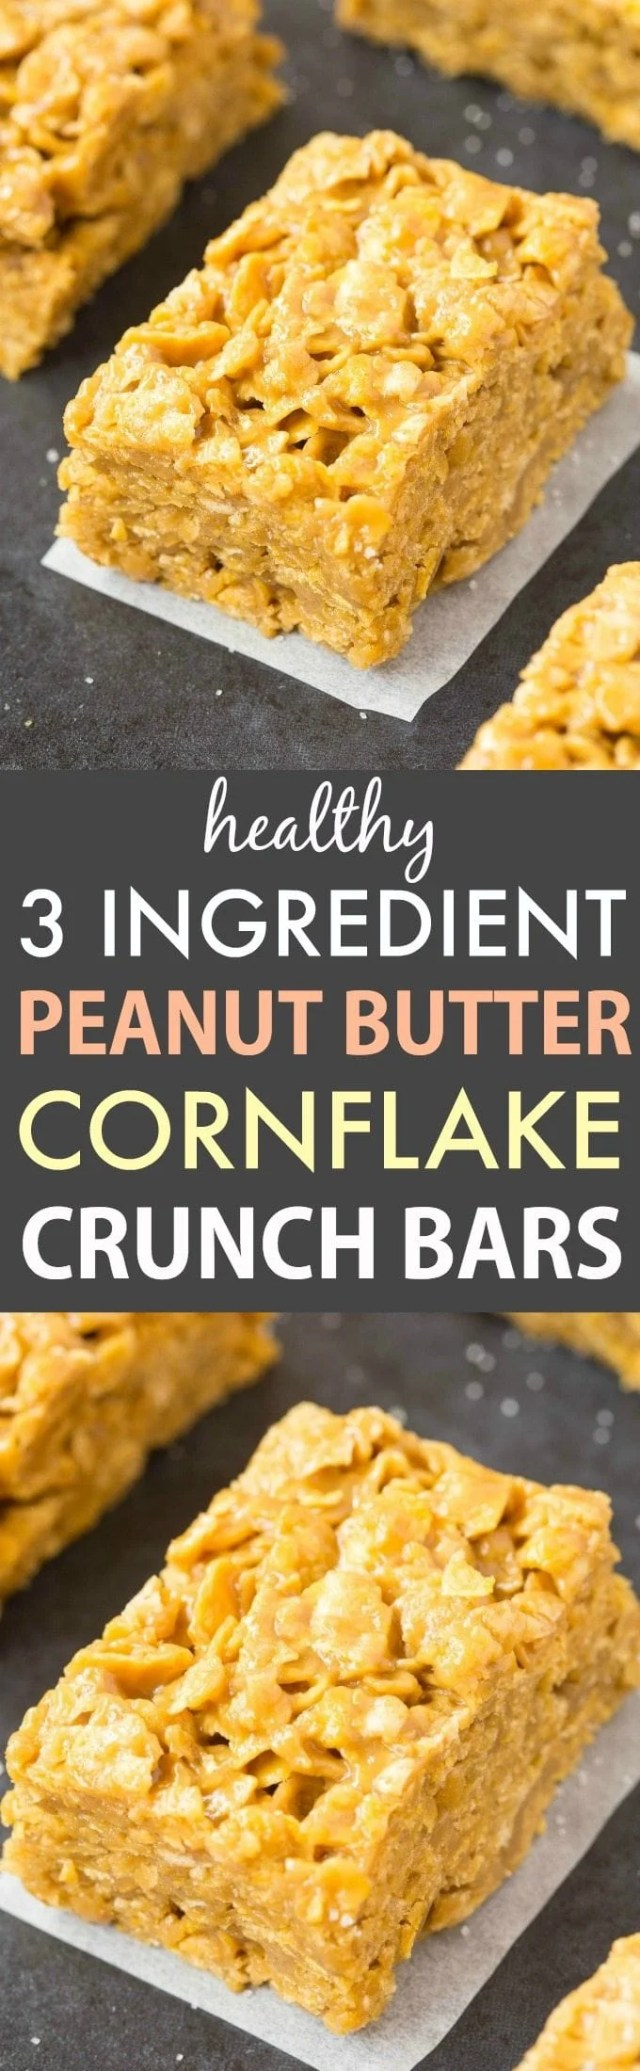 3 Ingredient No Bake Peanut Butter Corn Flake Cereal Crunch Bars